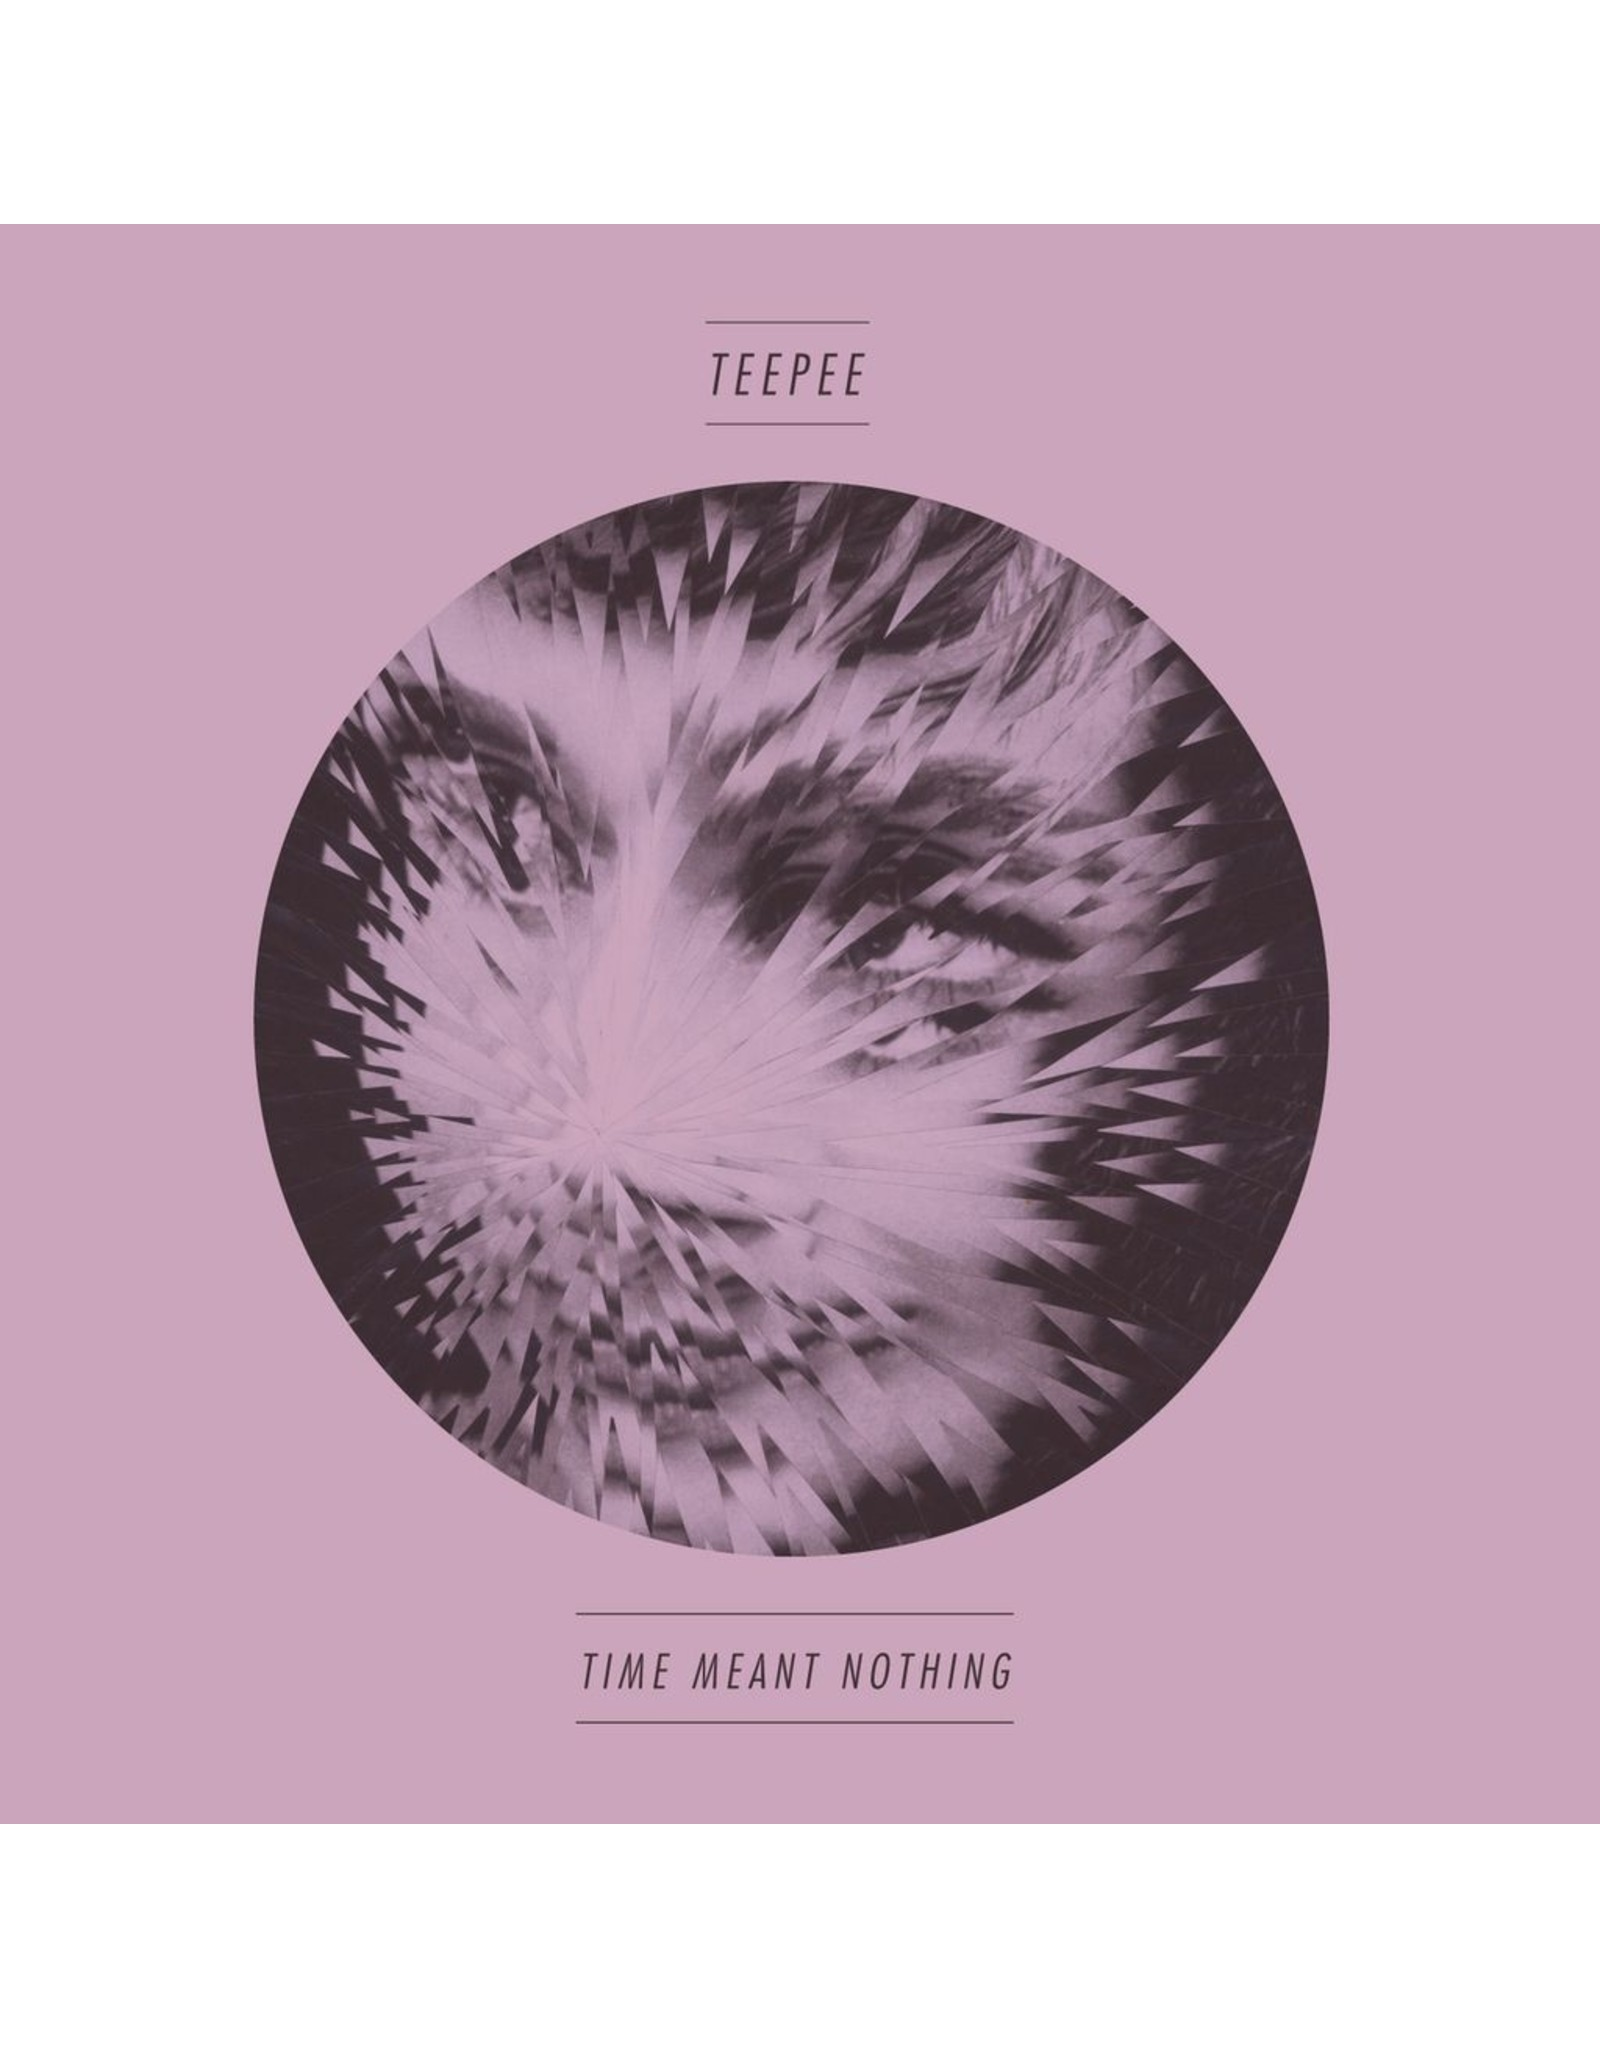 New Vinyl Teepee - Time Meant Nothing 7""""